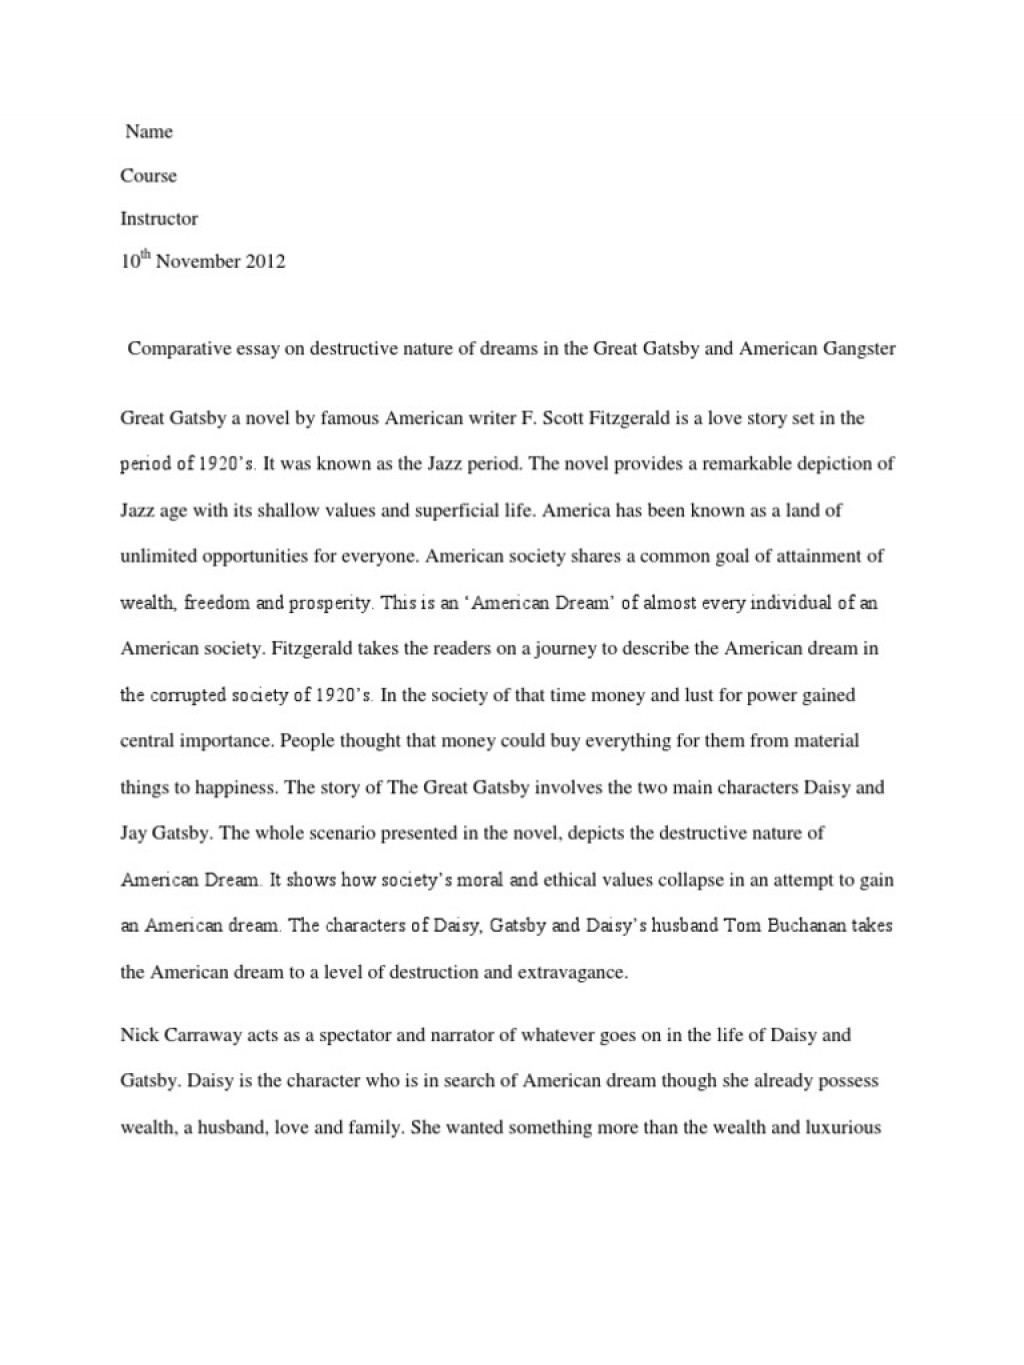 008 Comparative Essay On Destructive Nature Ofs  5884869ab6d87f259b8b49e2 Example American Unique Dream Topics Conclusion Great Gatsby OutlineLarge